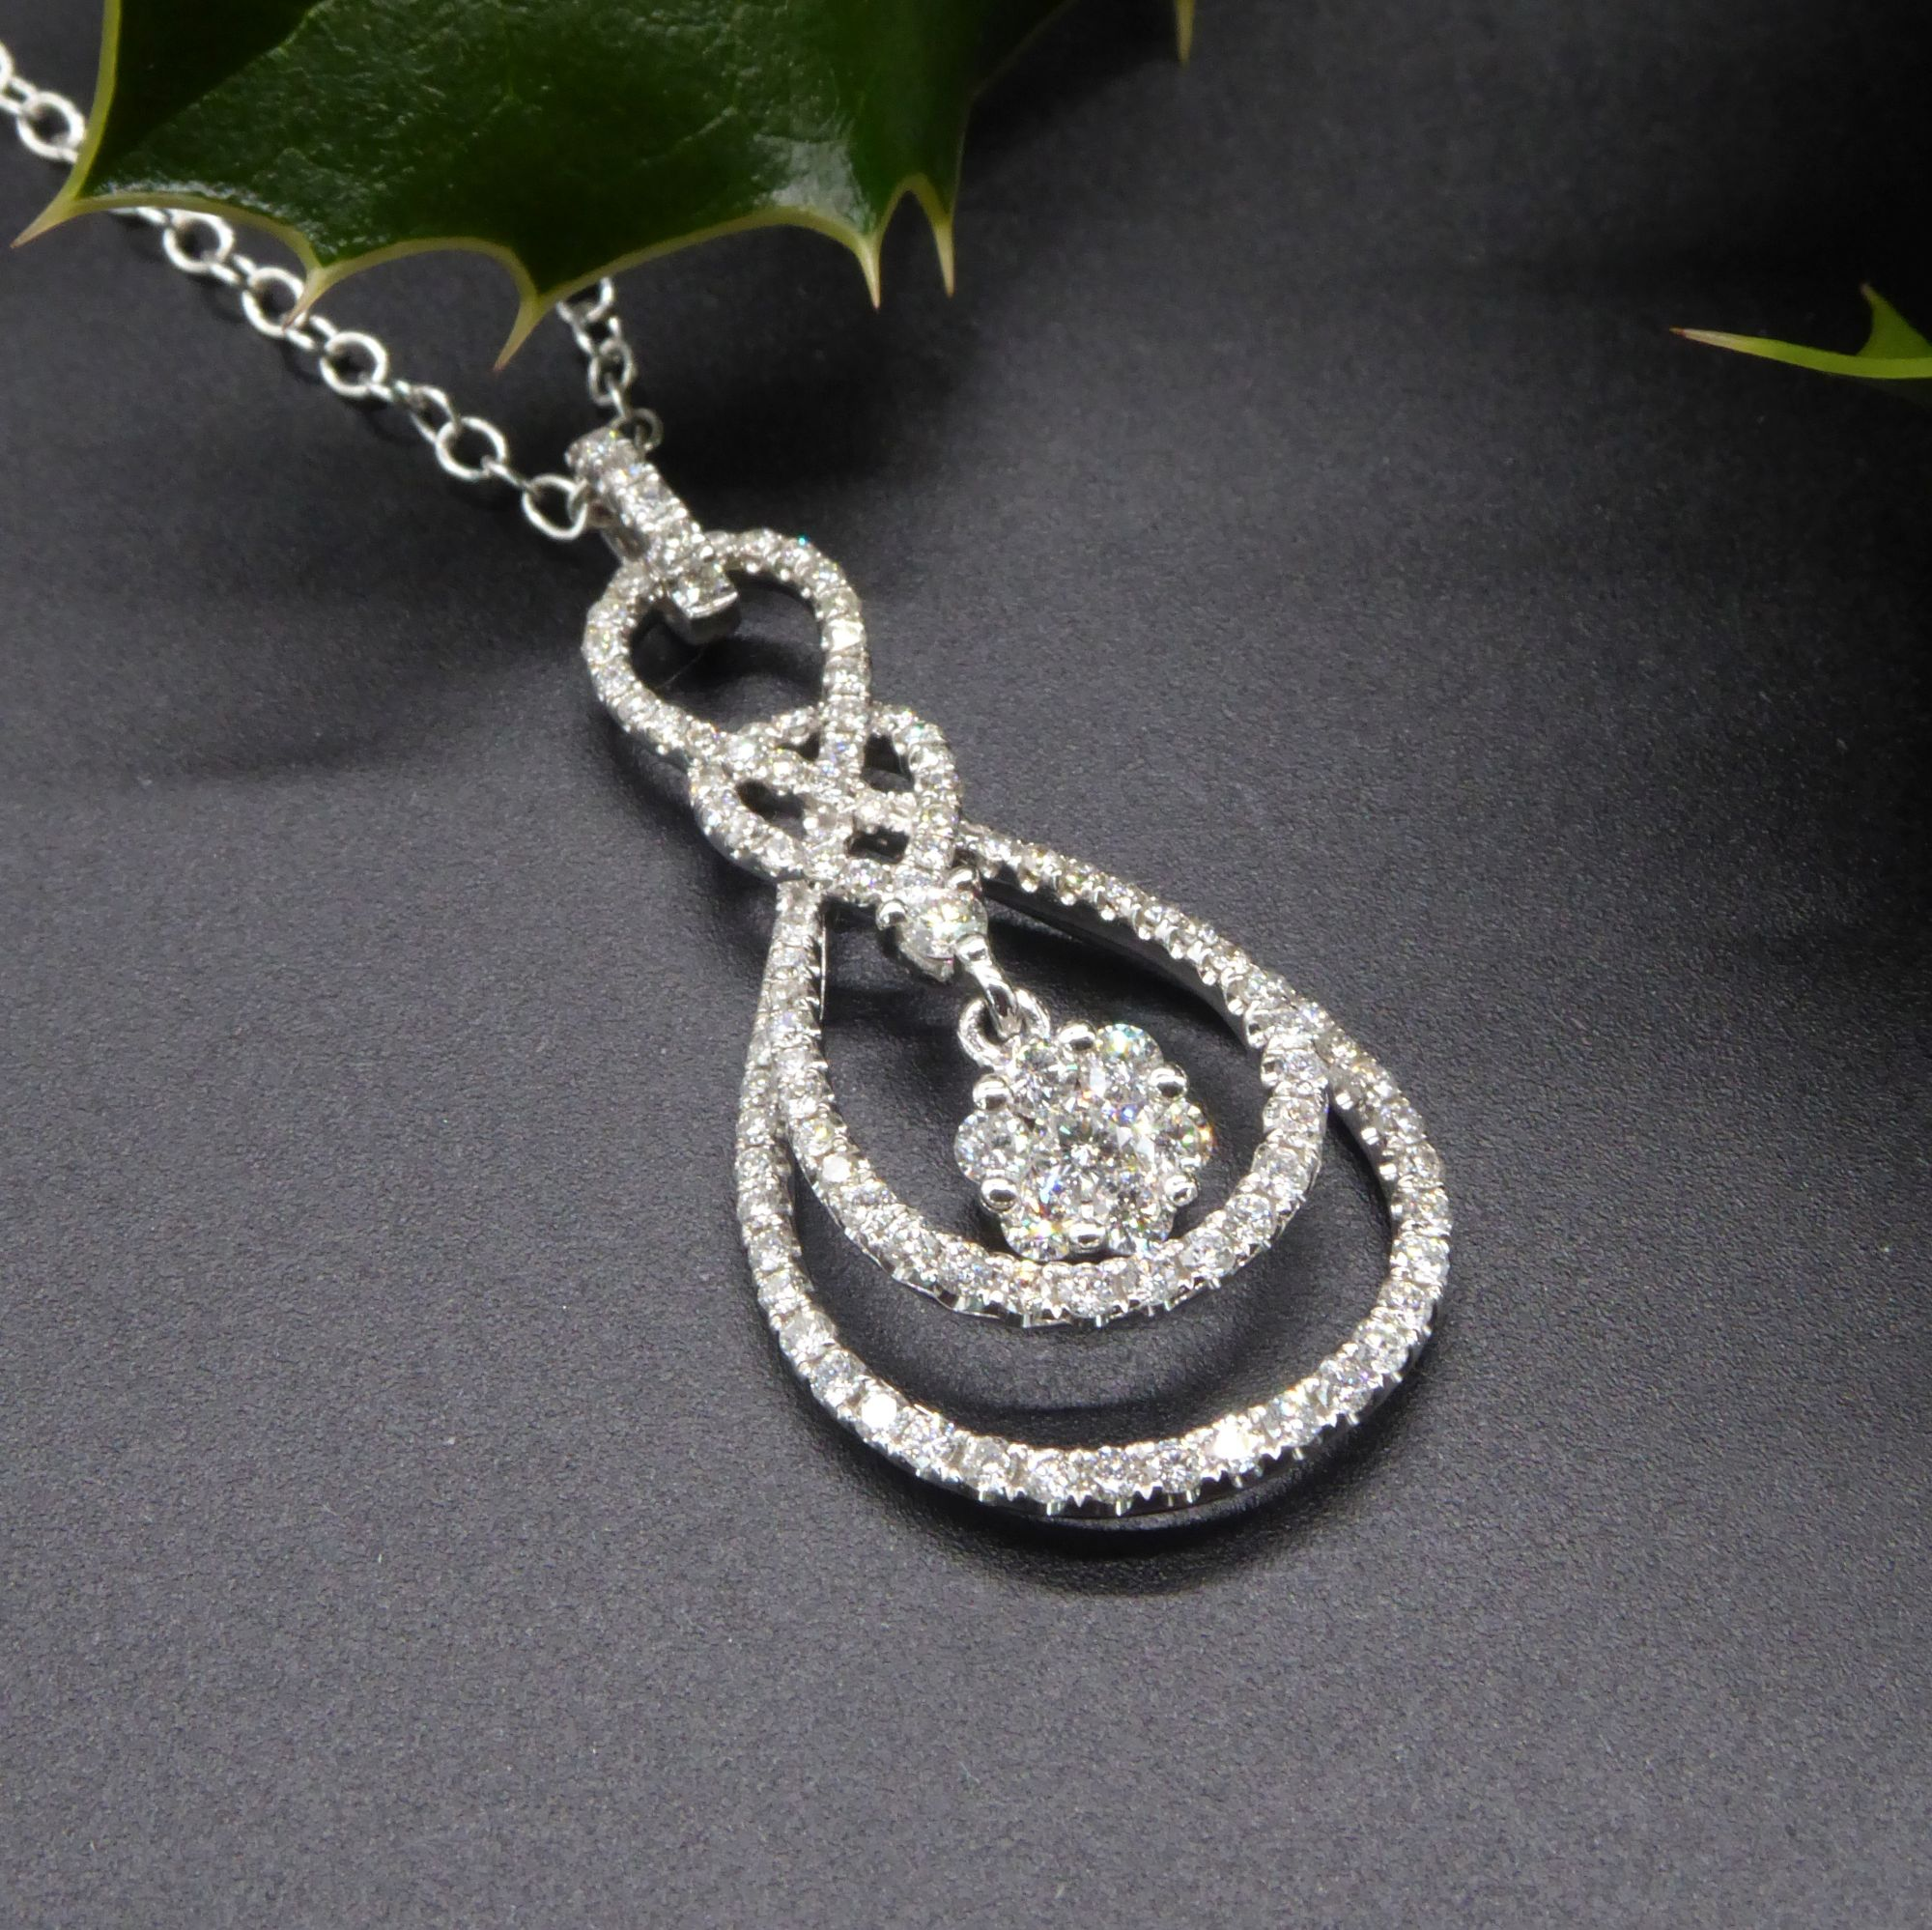 Concentric drop diamond pendant